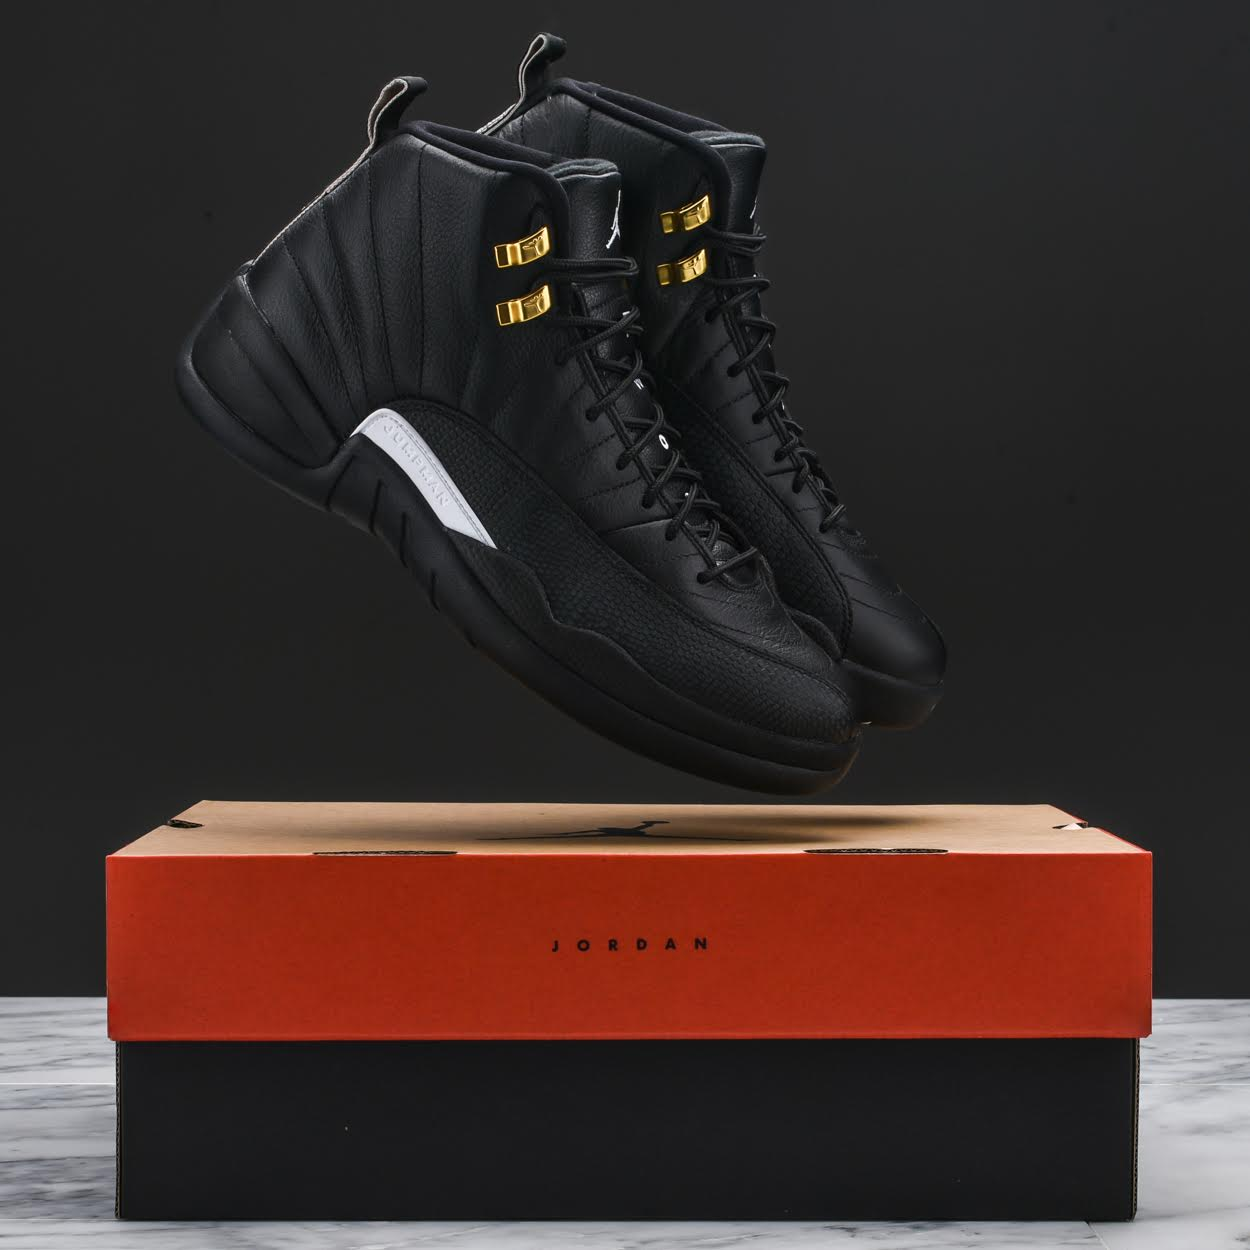 new arrival 11825 fe648 Get One Last Look at the Air Jordan 12 Retro 'The Master ...